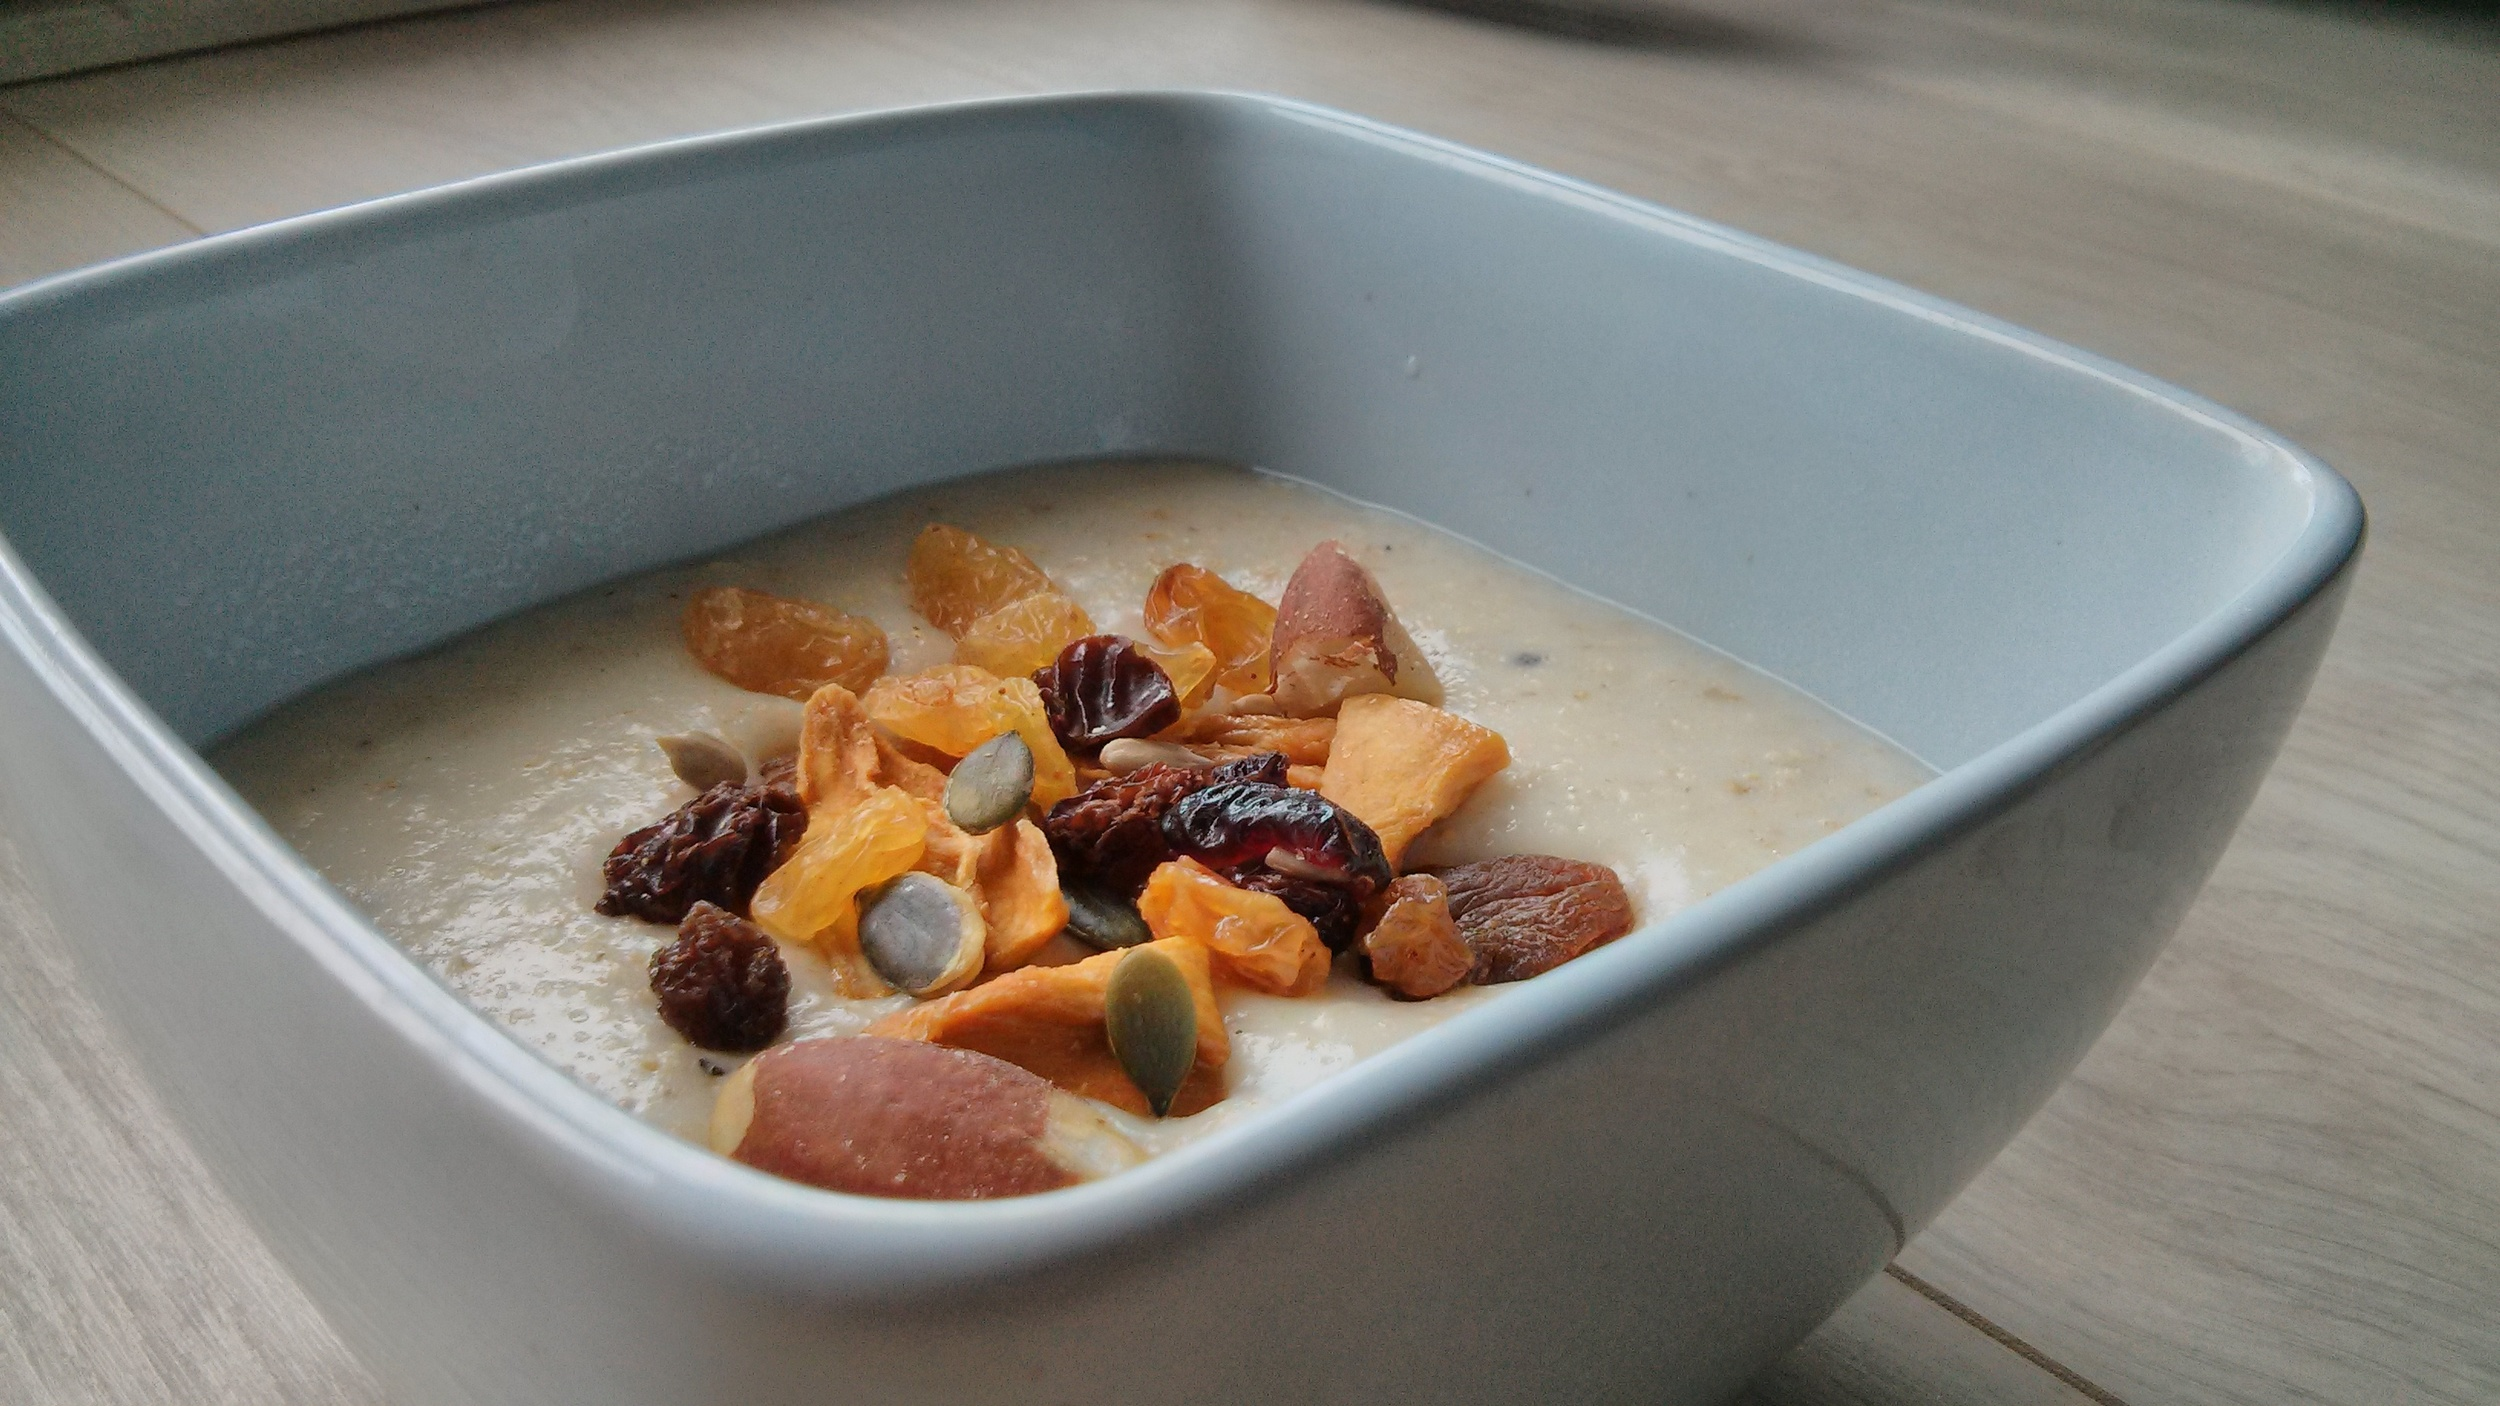 Link to recipe for porridge